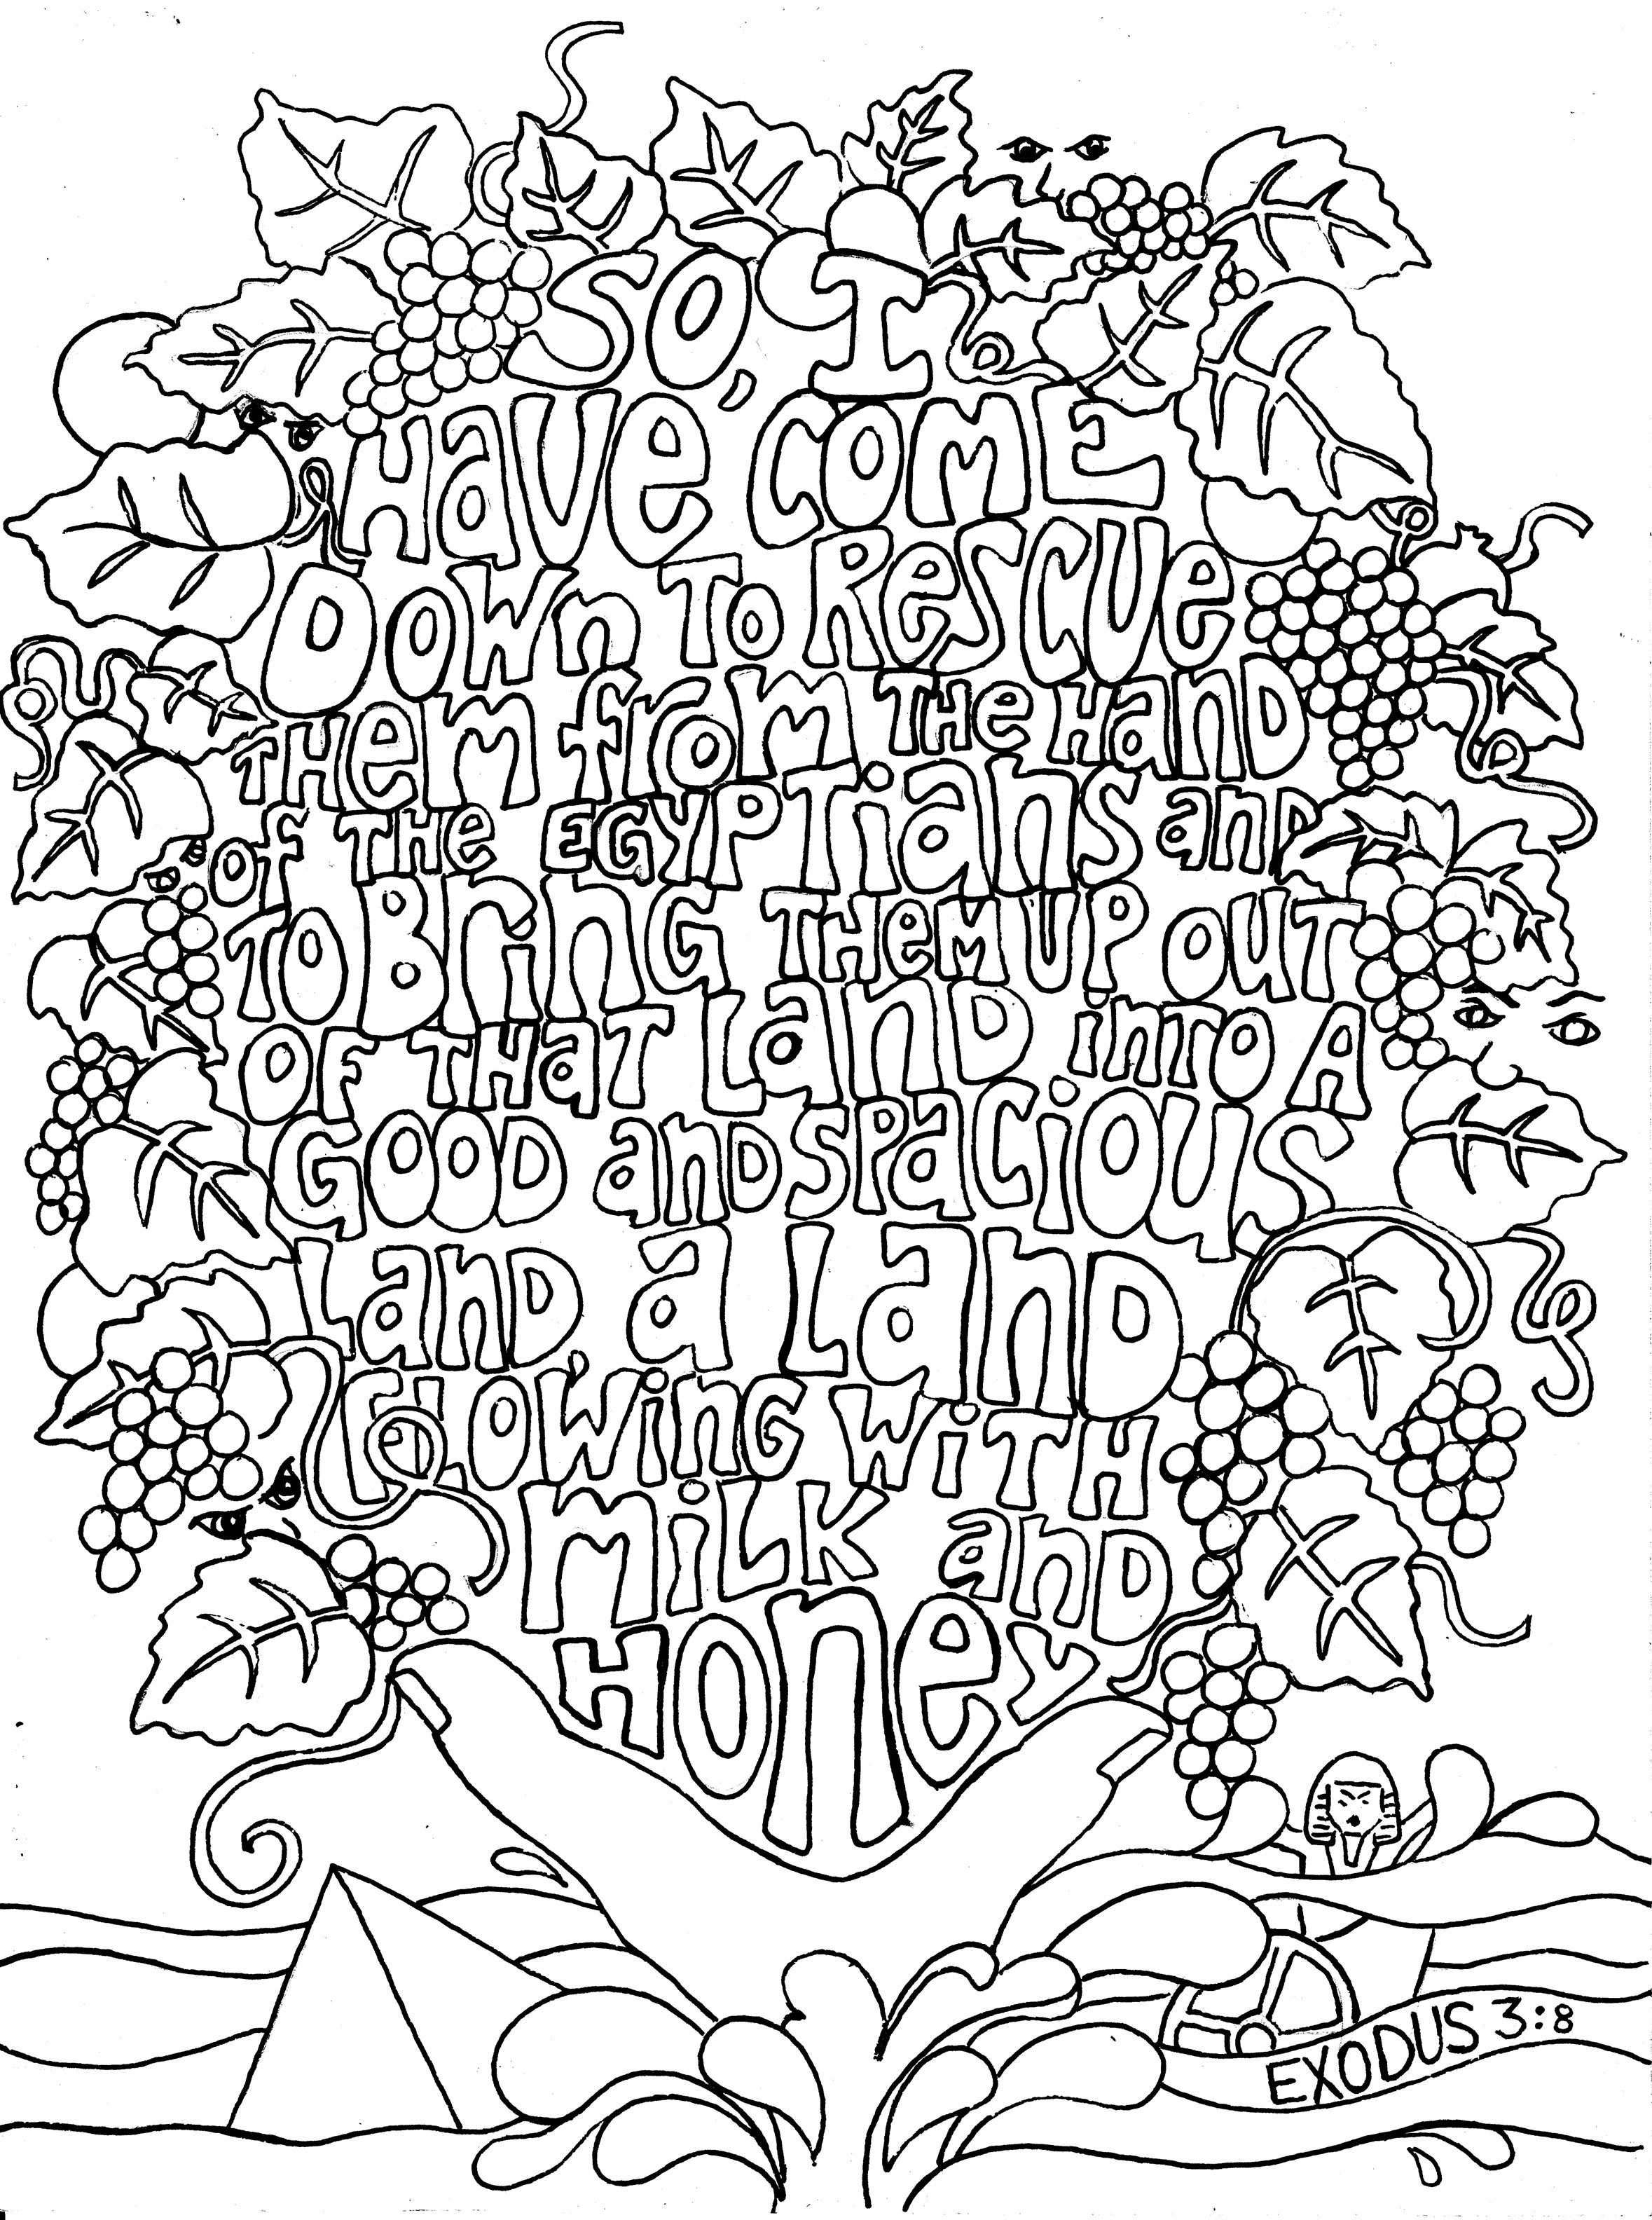 Free coloring pages bible - Exodus 3 8 Adult Colouring In Sheets Of Bible Verses Link Is Courtesy Of A Google